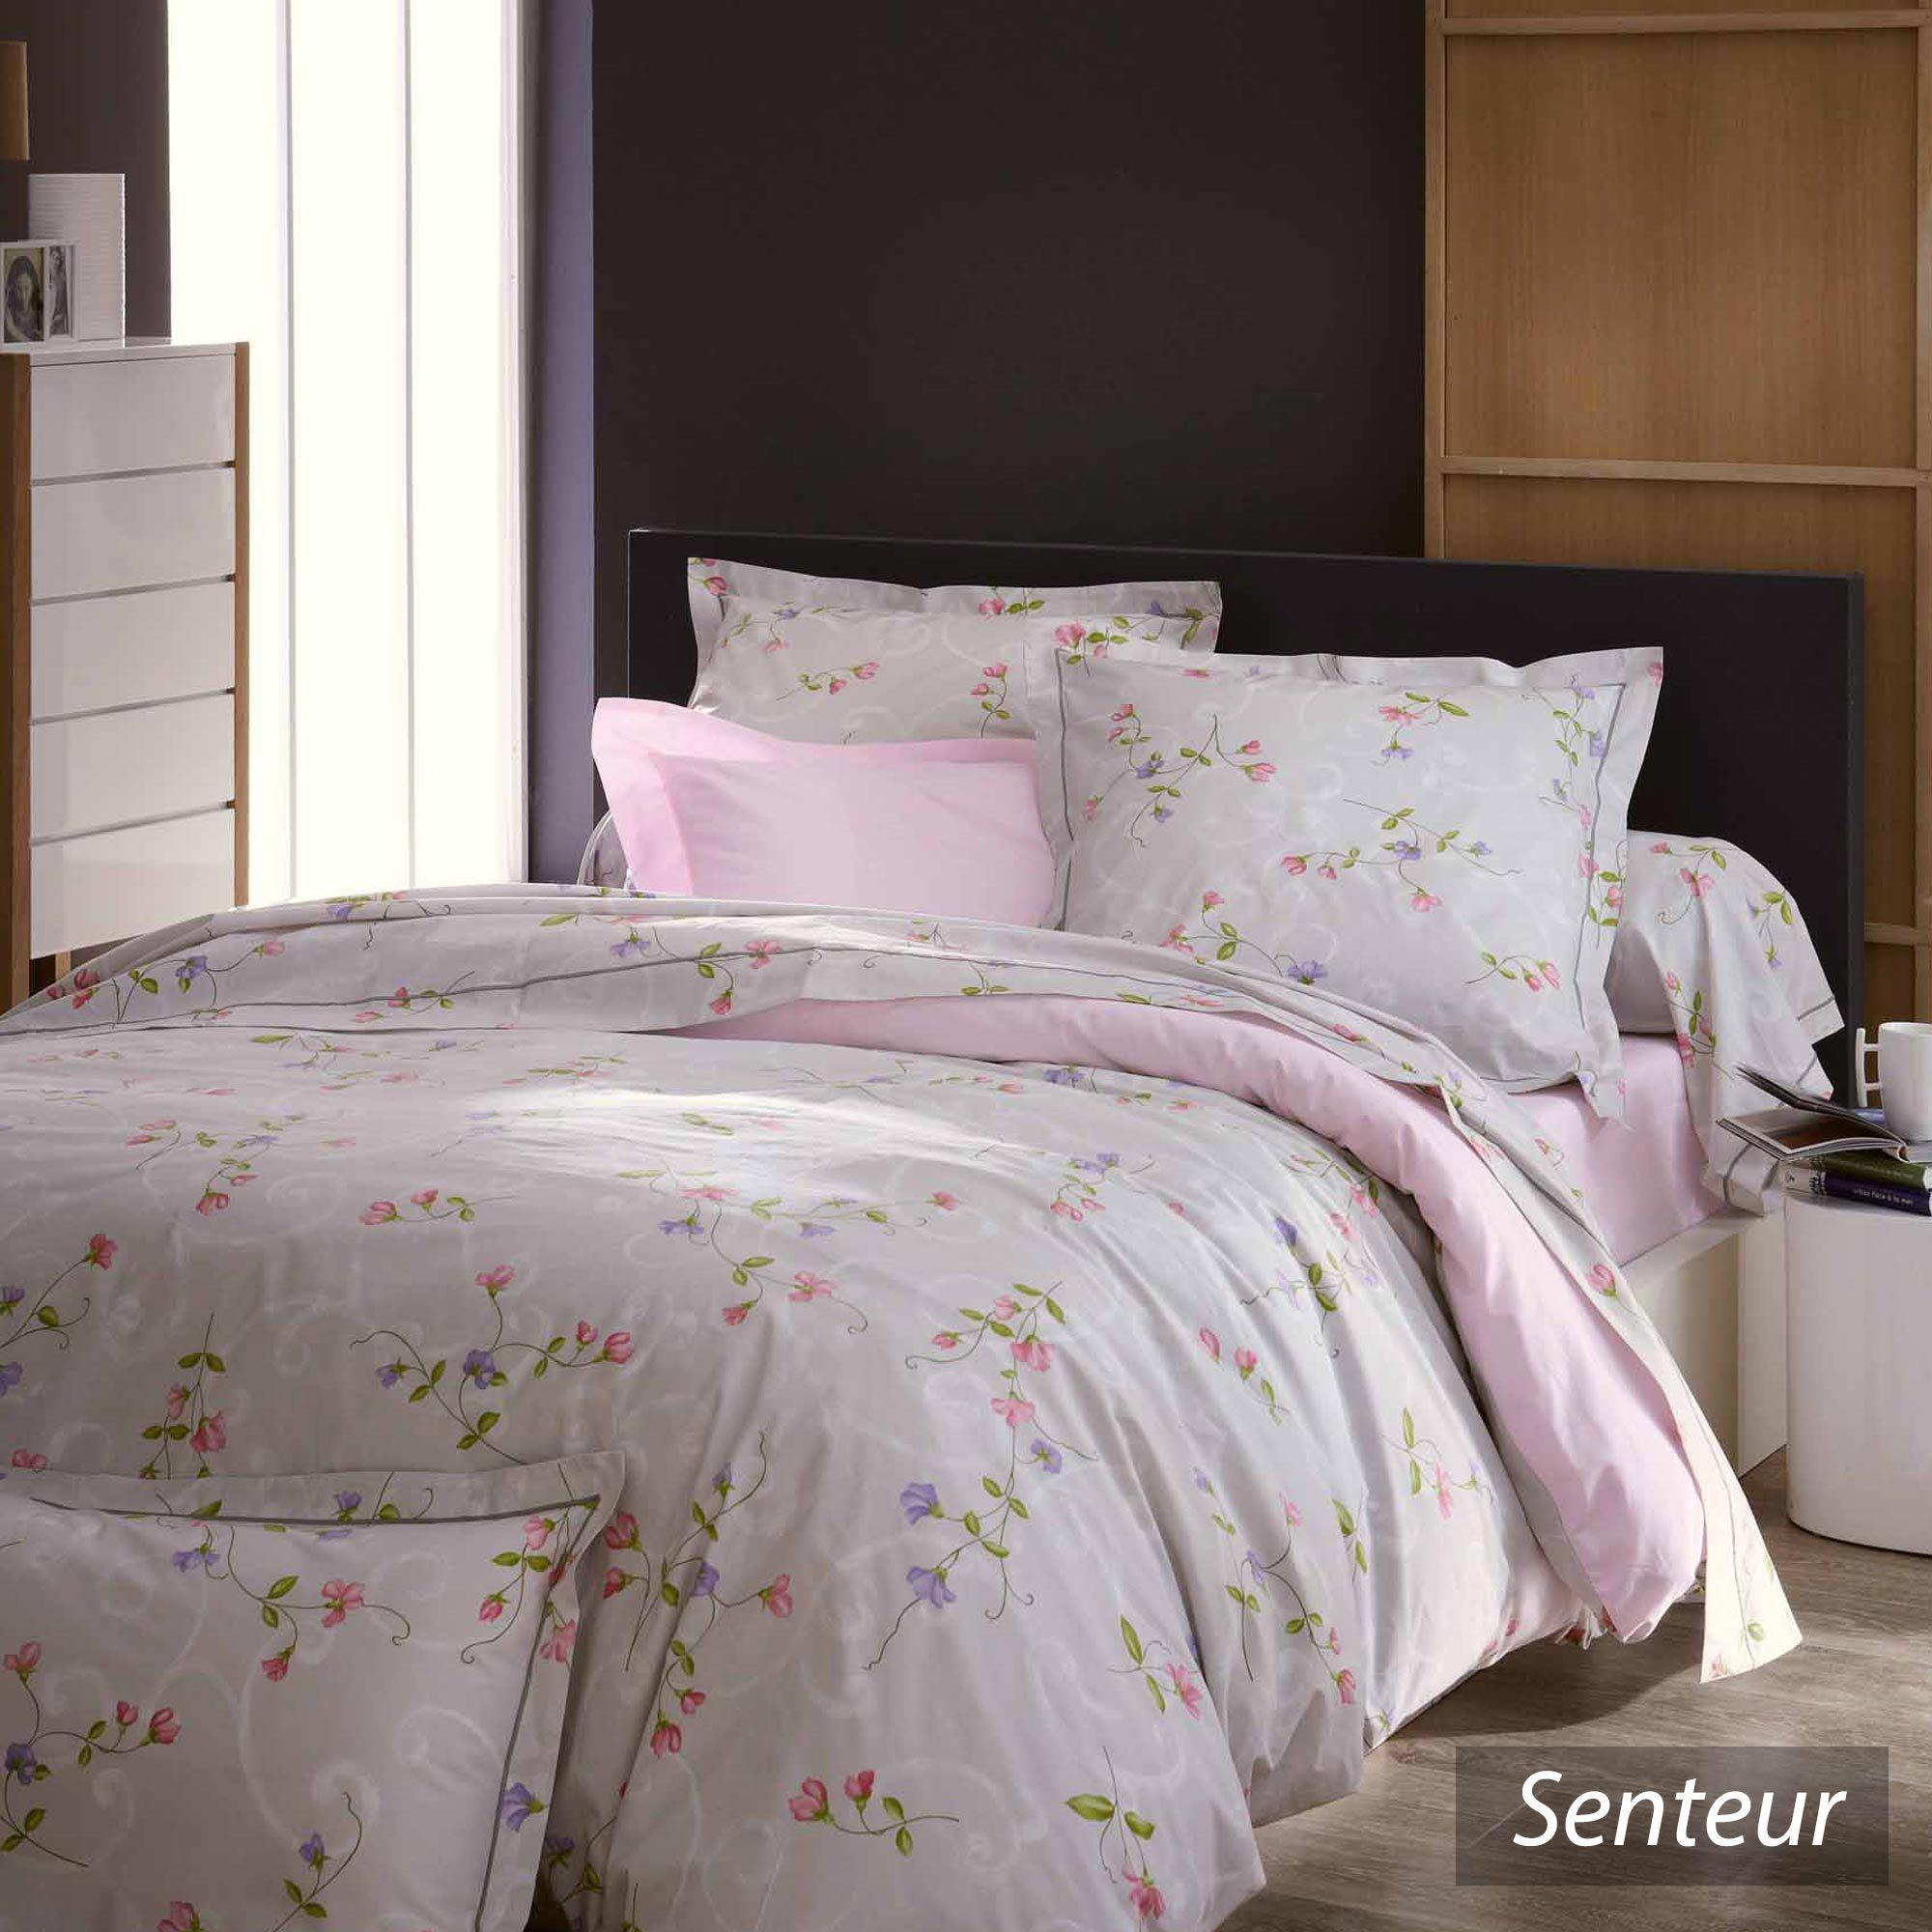 housse de couette 140x200 cm percale pur coton senteur d stockage ebay. Black Bedroom Furniture Sets. Home Design Ideas